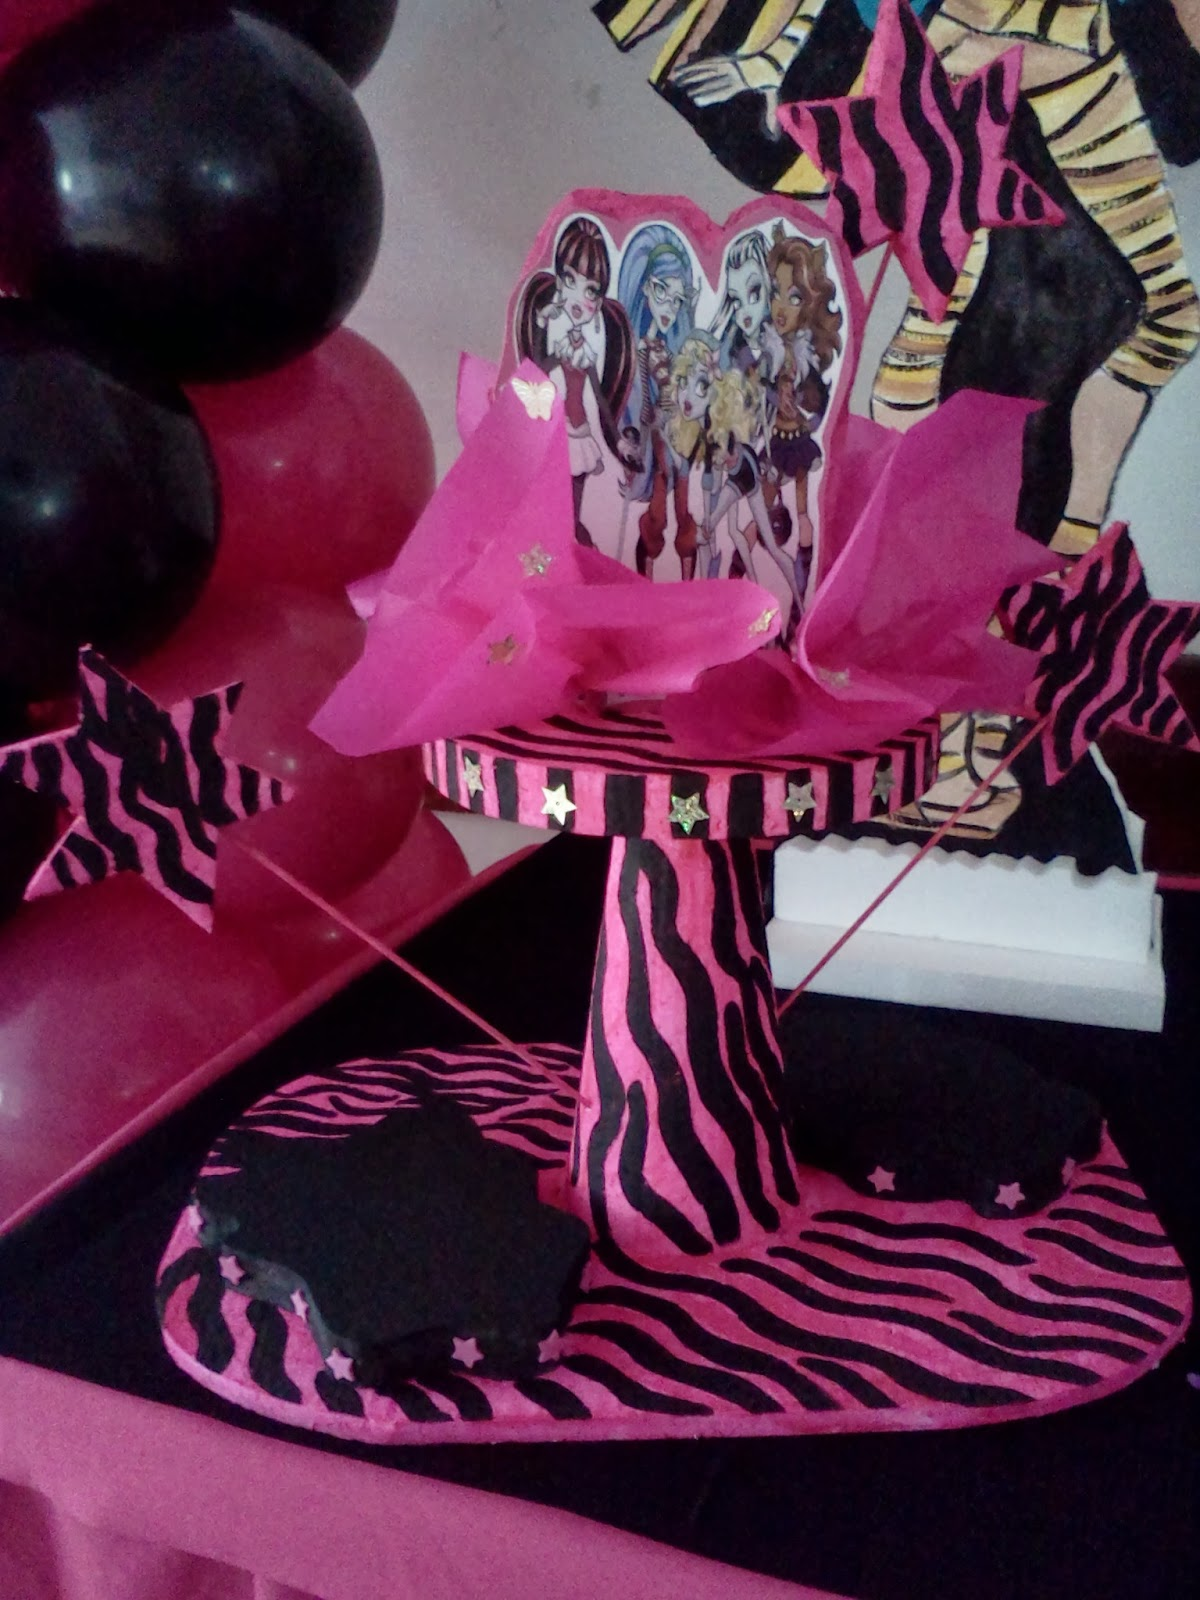 INVERSIONES EVENTSYS CA.: EL BOOM DE MONSTER HIGH: DECORACIÓN DE ...